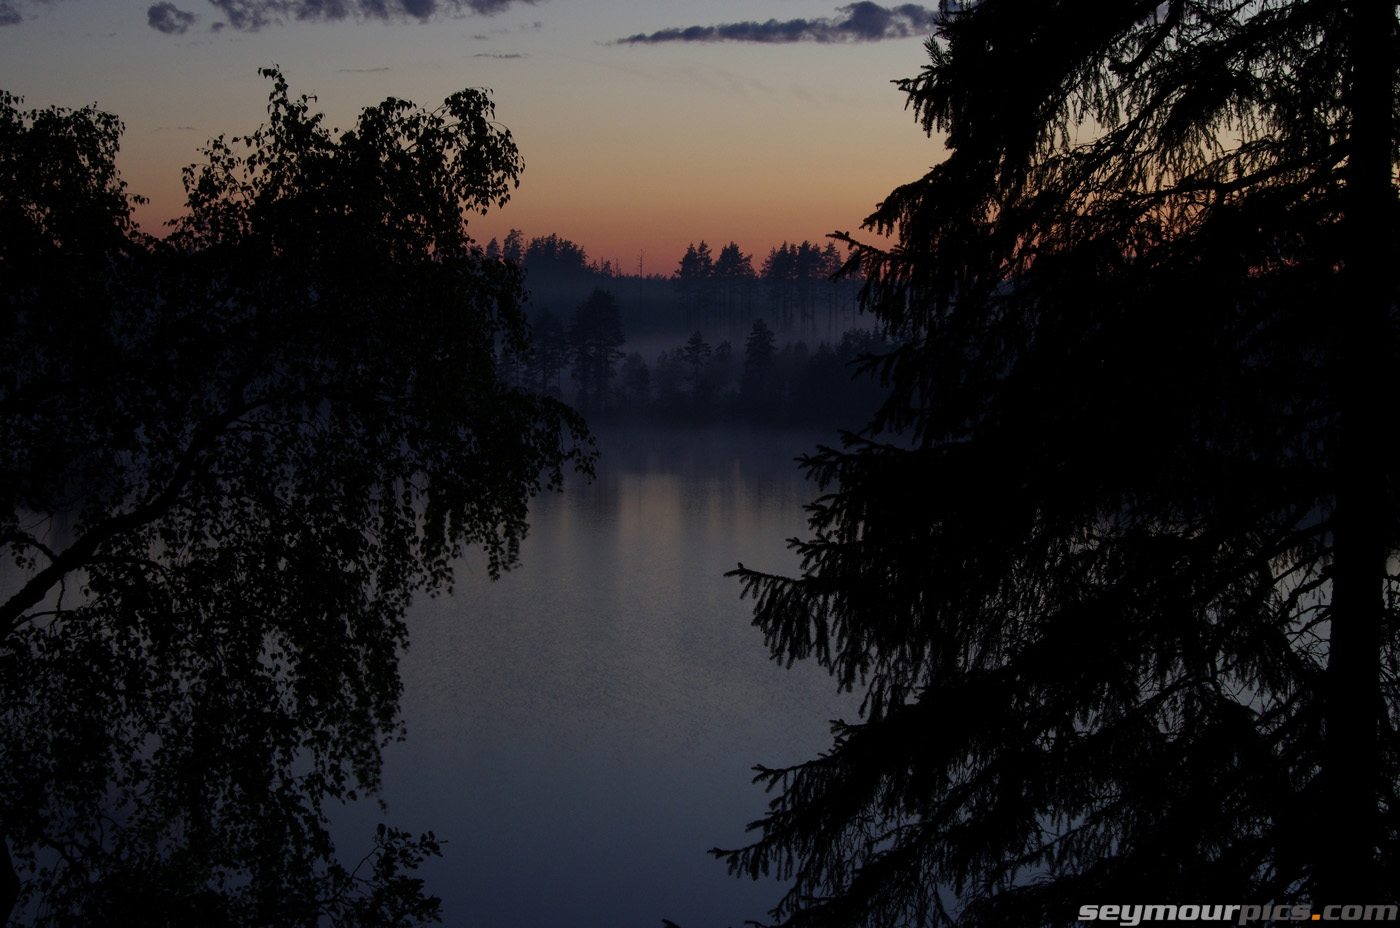 seymourpics-wallpaper-finland-lake-at-night_1400px.jpg